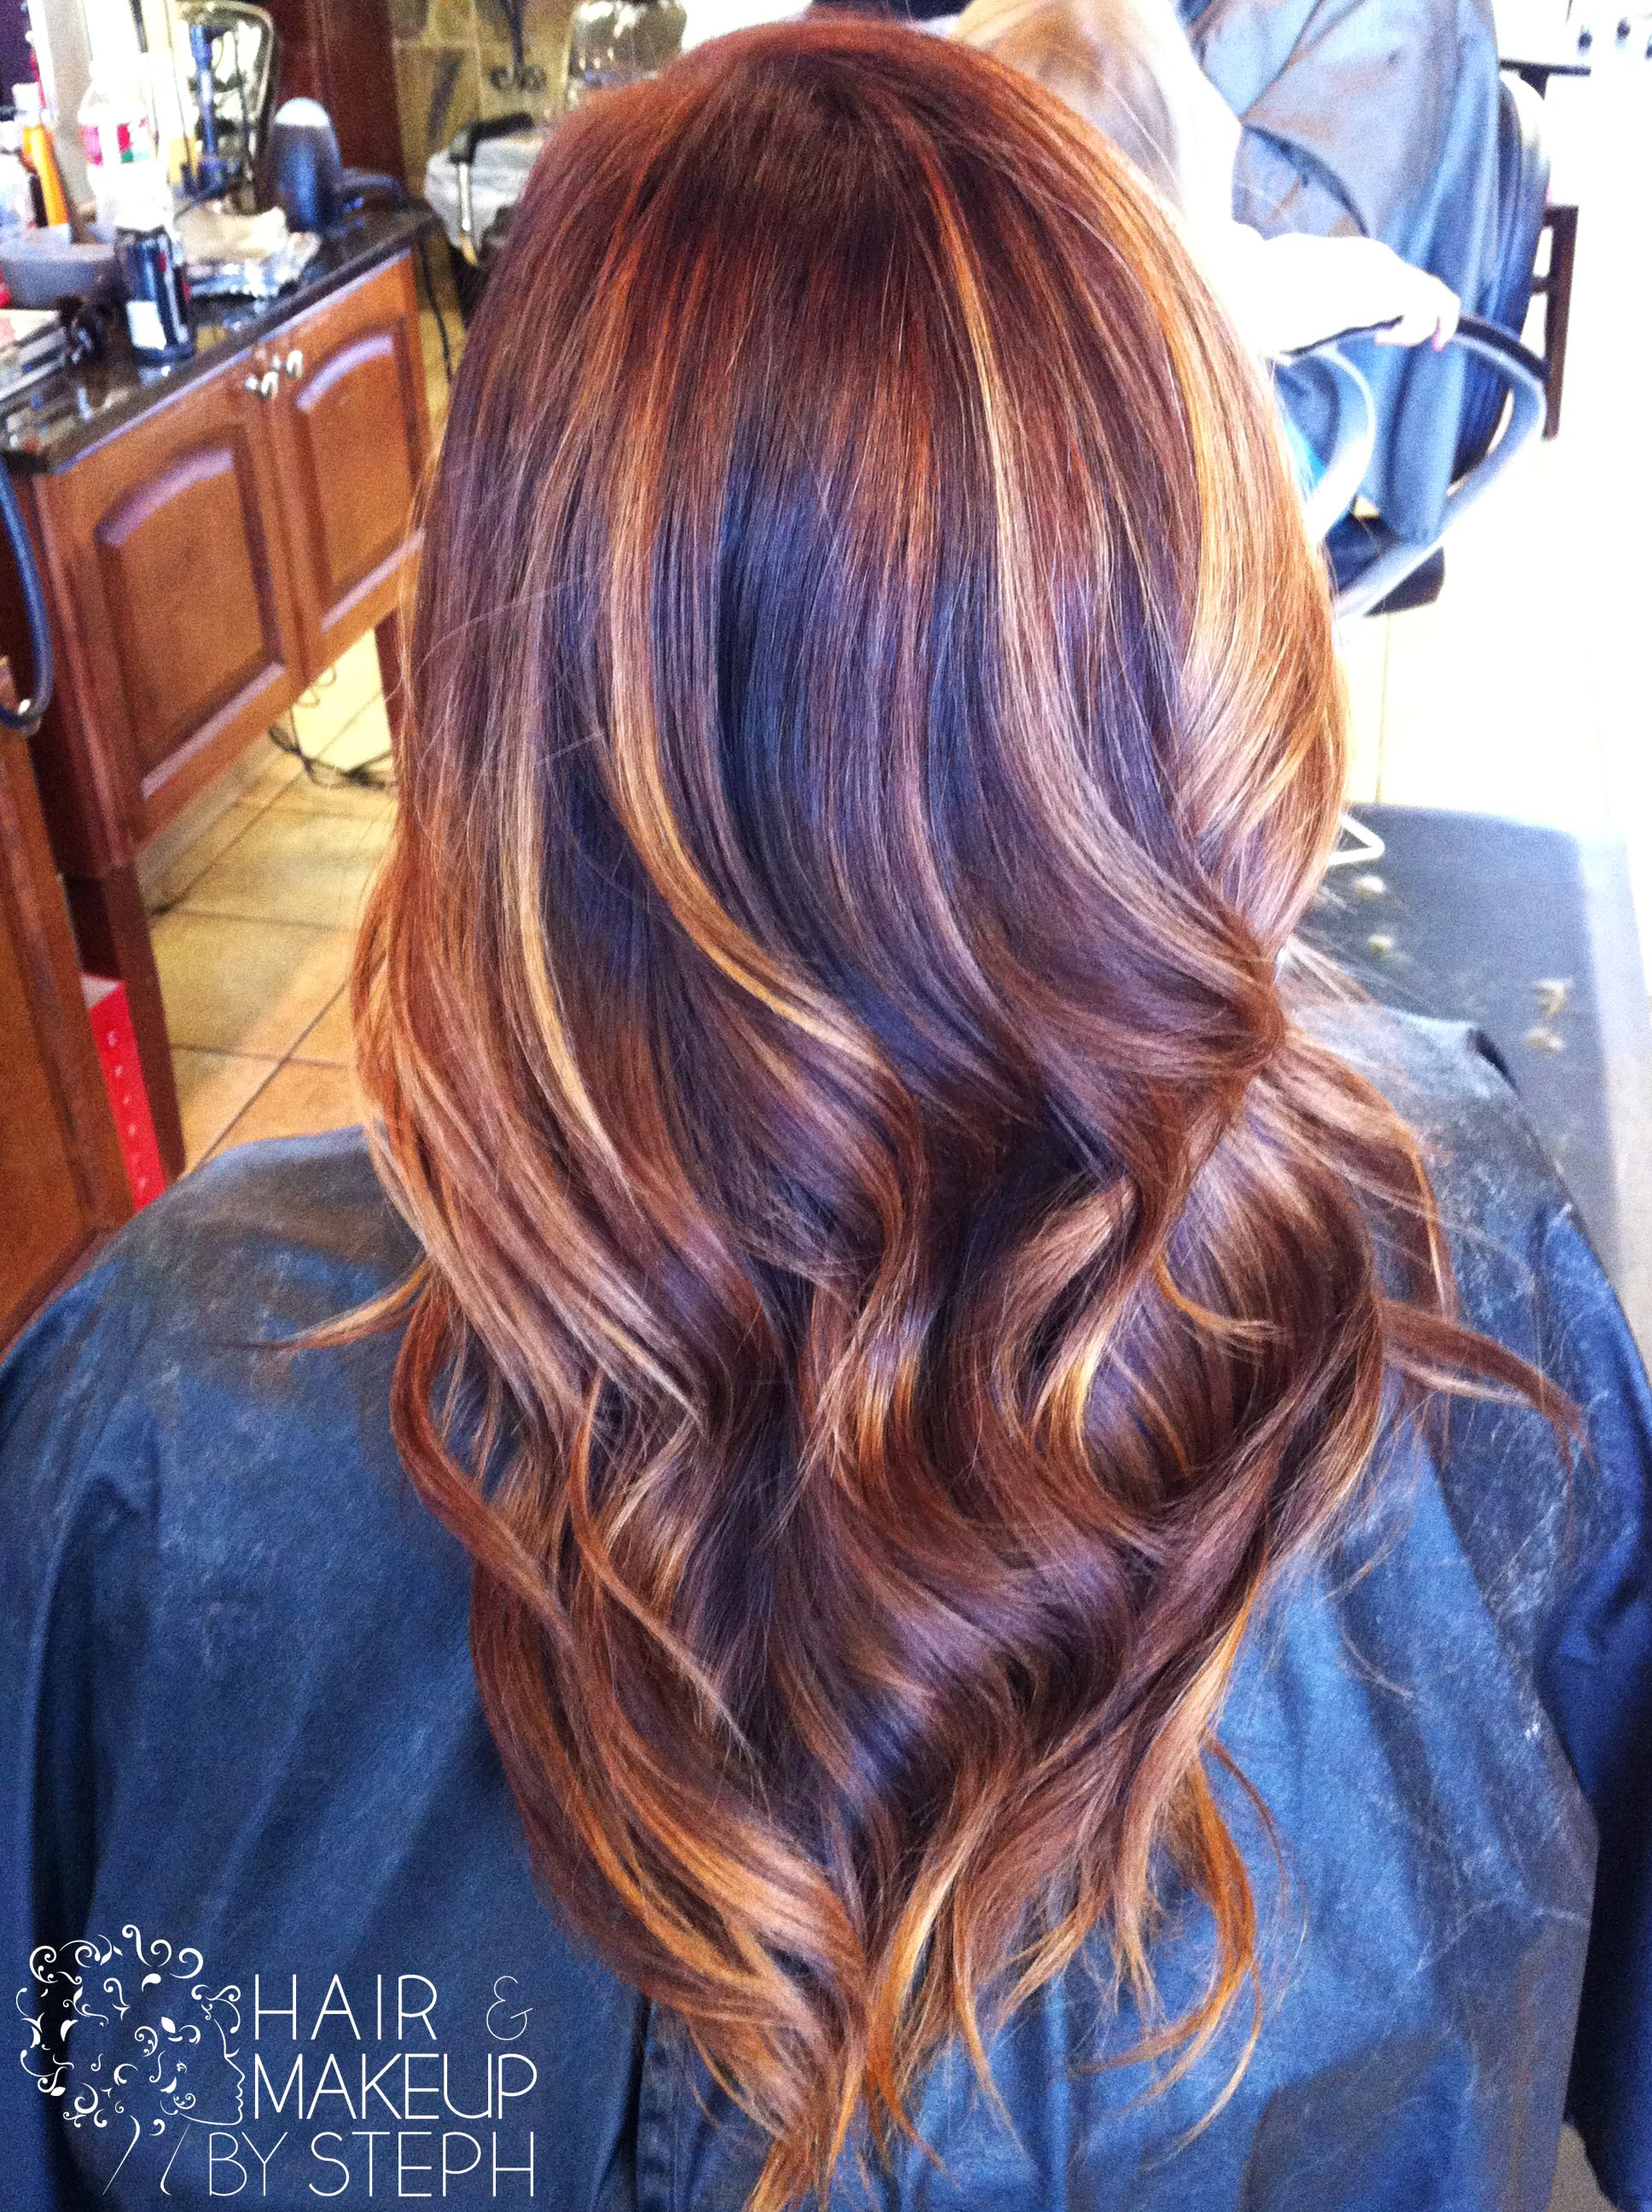 Hair and Make-up by Steph | Pretty hair color, Pretty hair ...